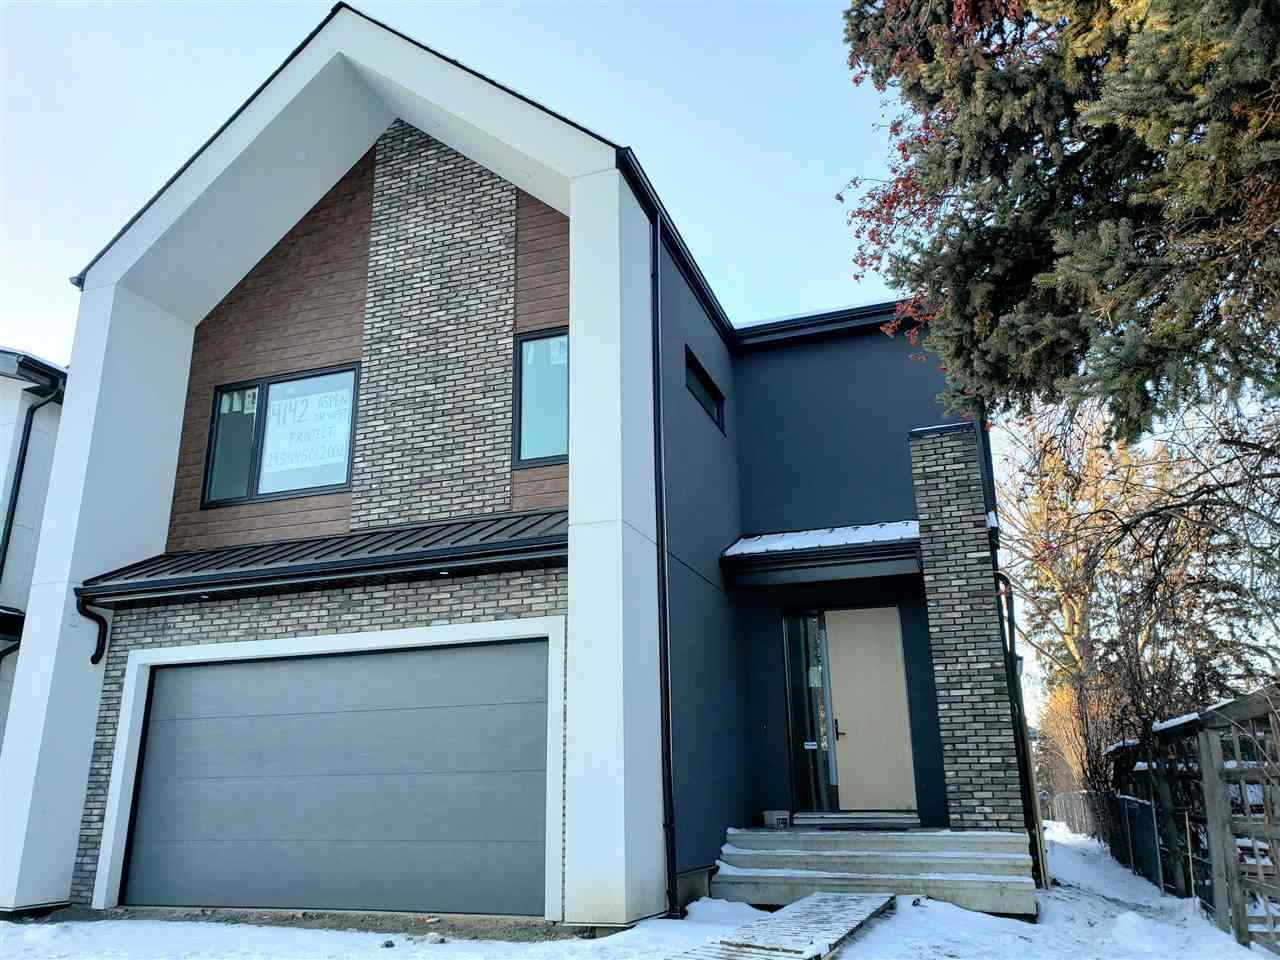 Welcome to Aspen Gardens one of Edmonton?s most sought after family neighborhood. This executive home is just under 3700 Sqft of developed living space.  This MODERN URBAN FARMHOUSE STYLE 4 bedroom home comes fully developed on 4 levels.  This home features luxurious high end finishings on each level.  There is a developed basement, a 3rd floor Patio, and private West facing rear yard backing onto Whitemud Ravine. Could you have anything else on the list? This is a very unique opportunity to own a Brand New Infill in Aspen Gardens, close to some of the best schools in the city including Westbrook. Plans have been prepared by one of Edmonton's top Residential Infill Builders. Highly sought after neighbourhood, great private Ravine location sandwiched between 2 parks and access to biking trails to the university, and downtown.